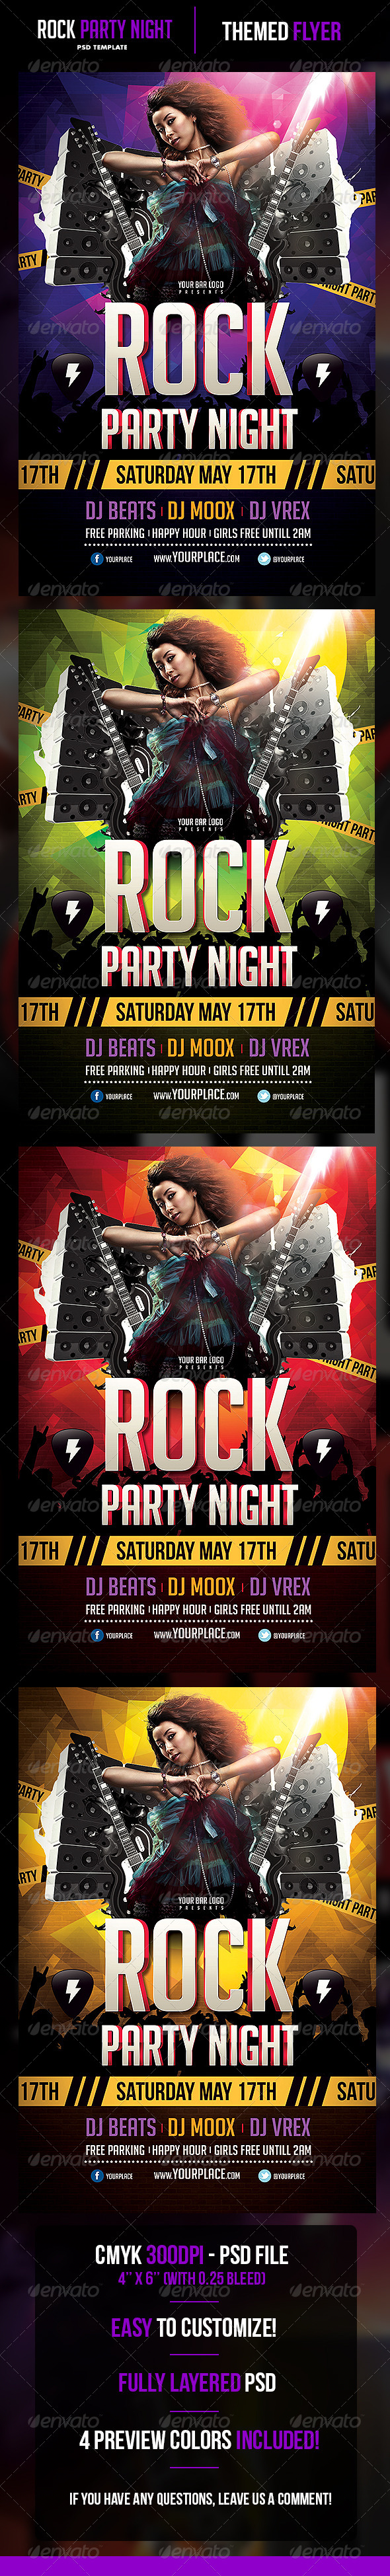 Rock Party Night Flyer Template - Flyers Print Templates